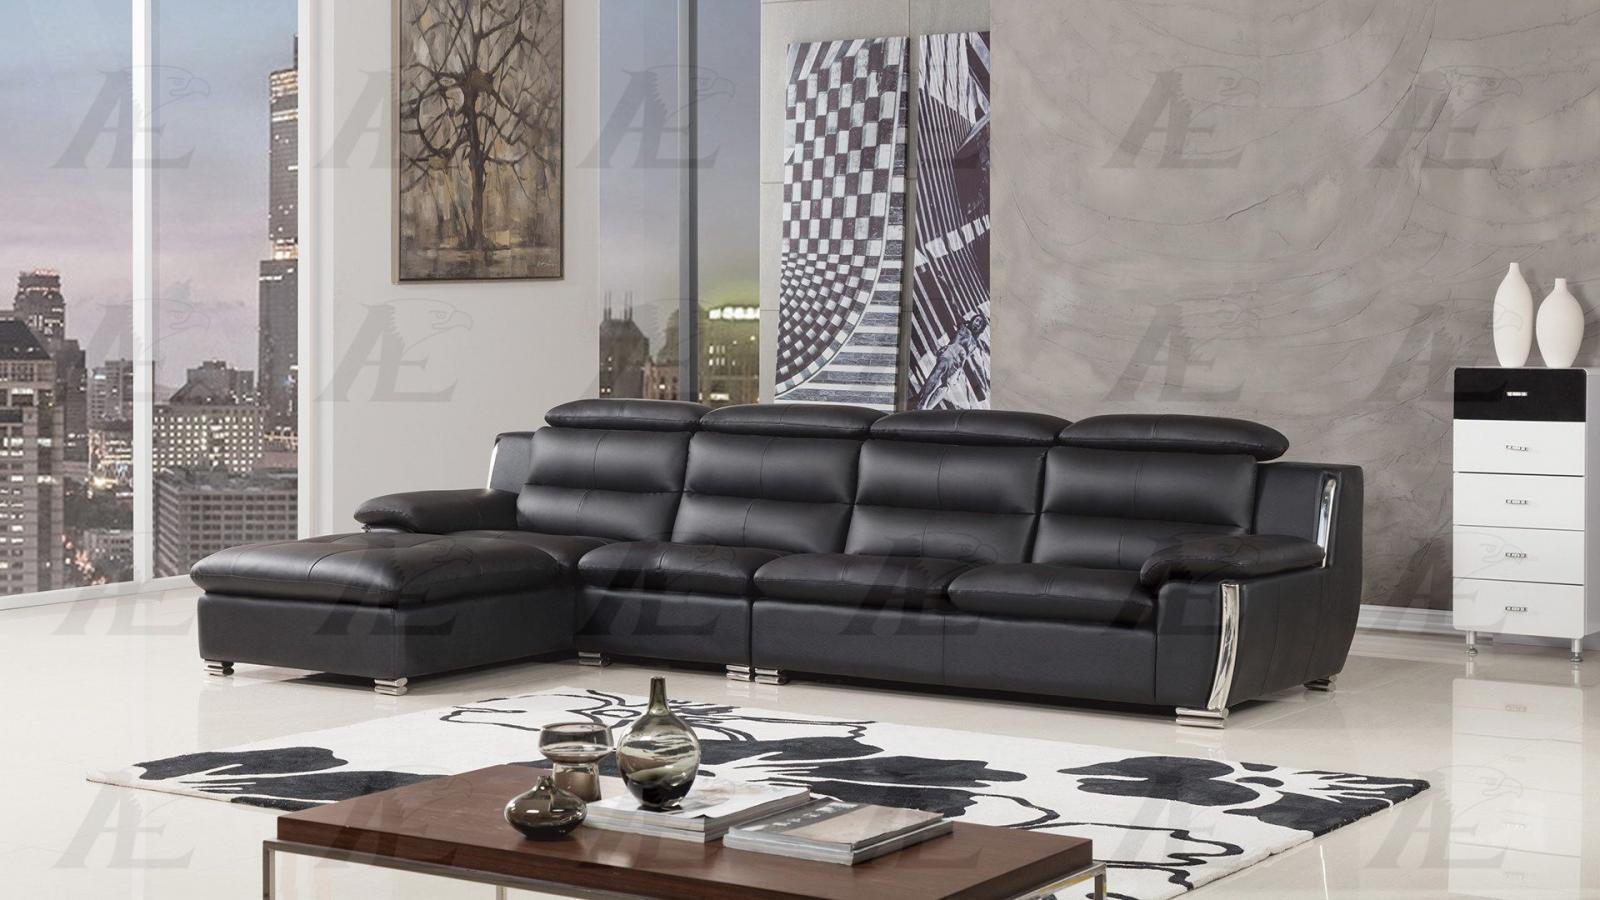 American Eagle AE-L729 Black Modern Faux Leather Sofa Set w Right Hand Chase 3pc